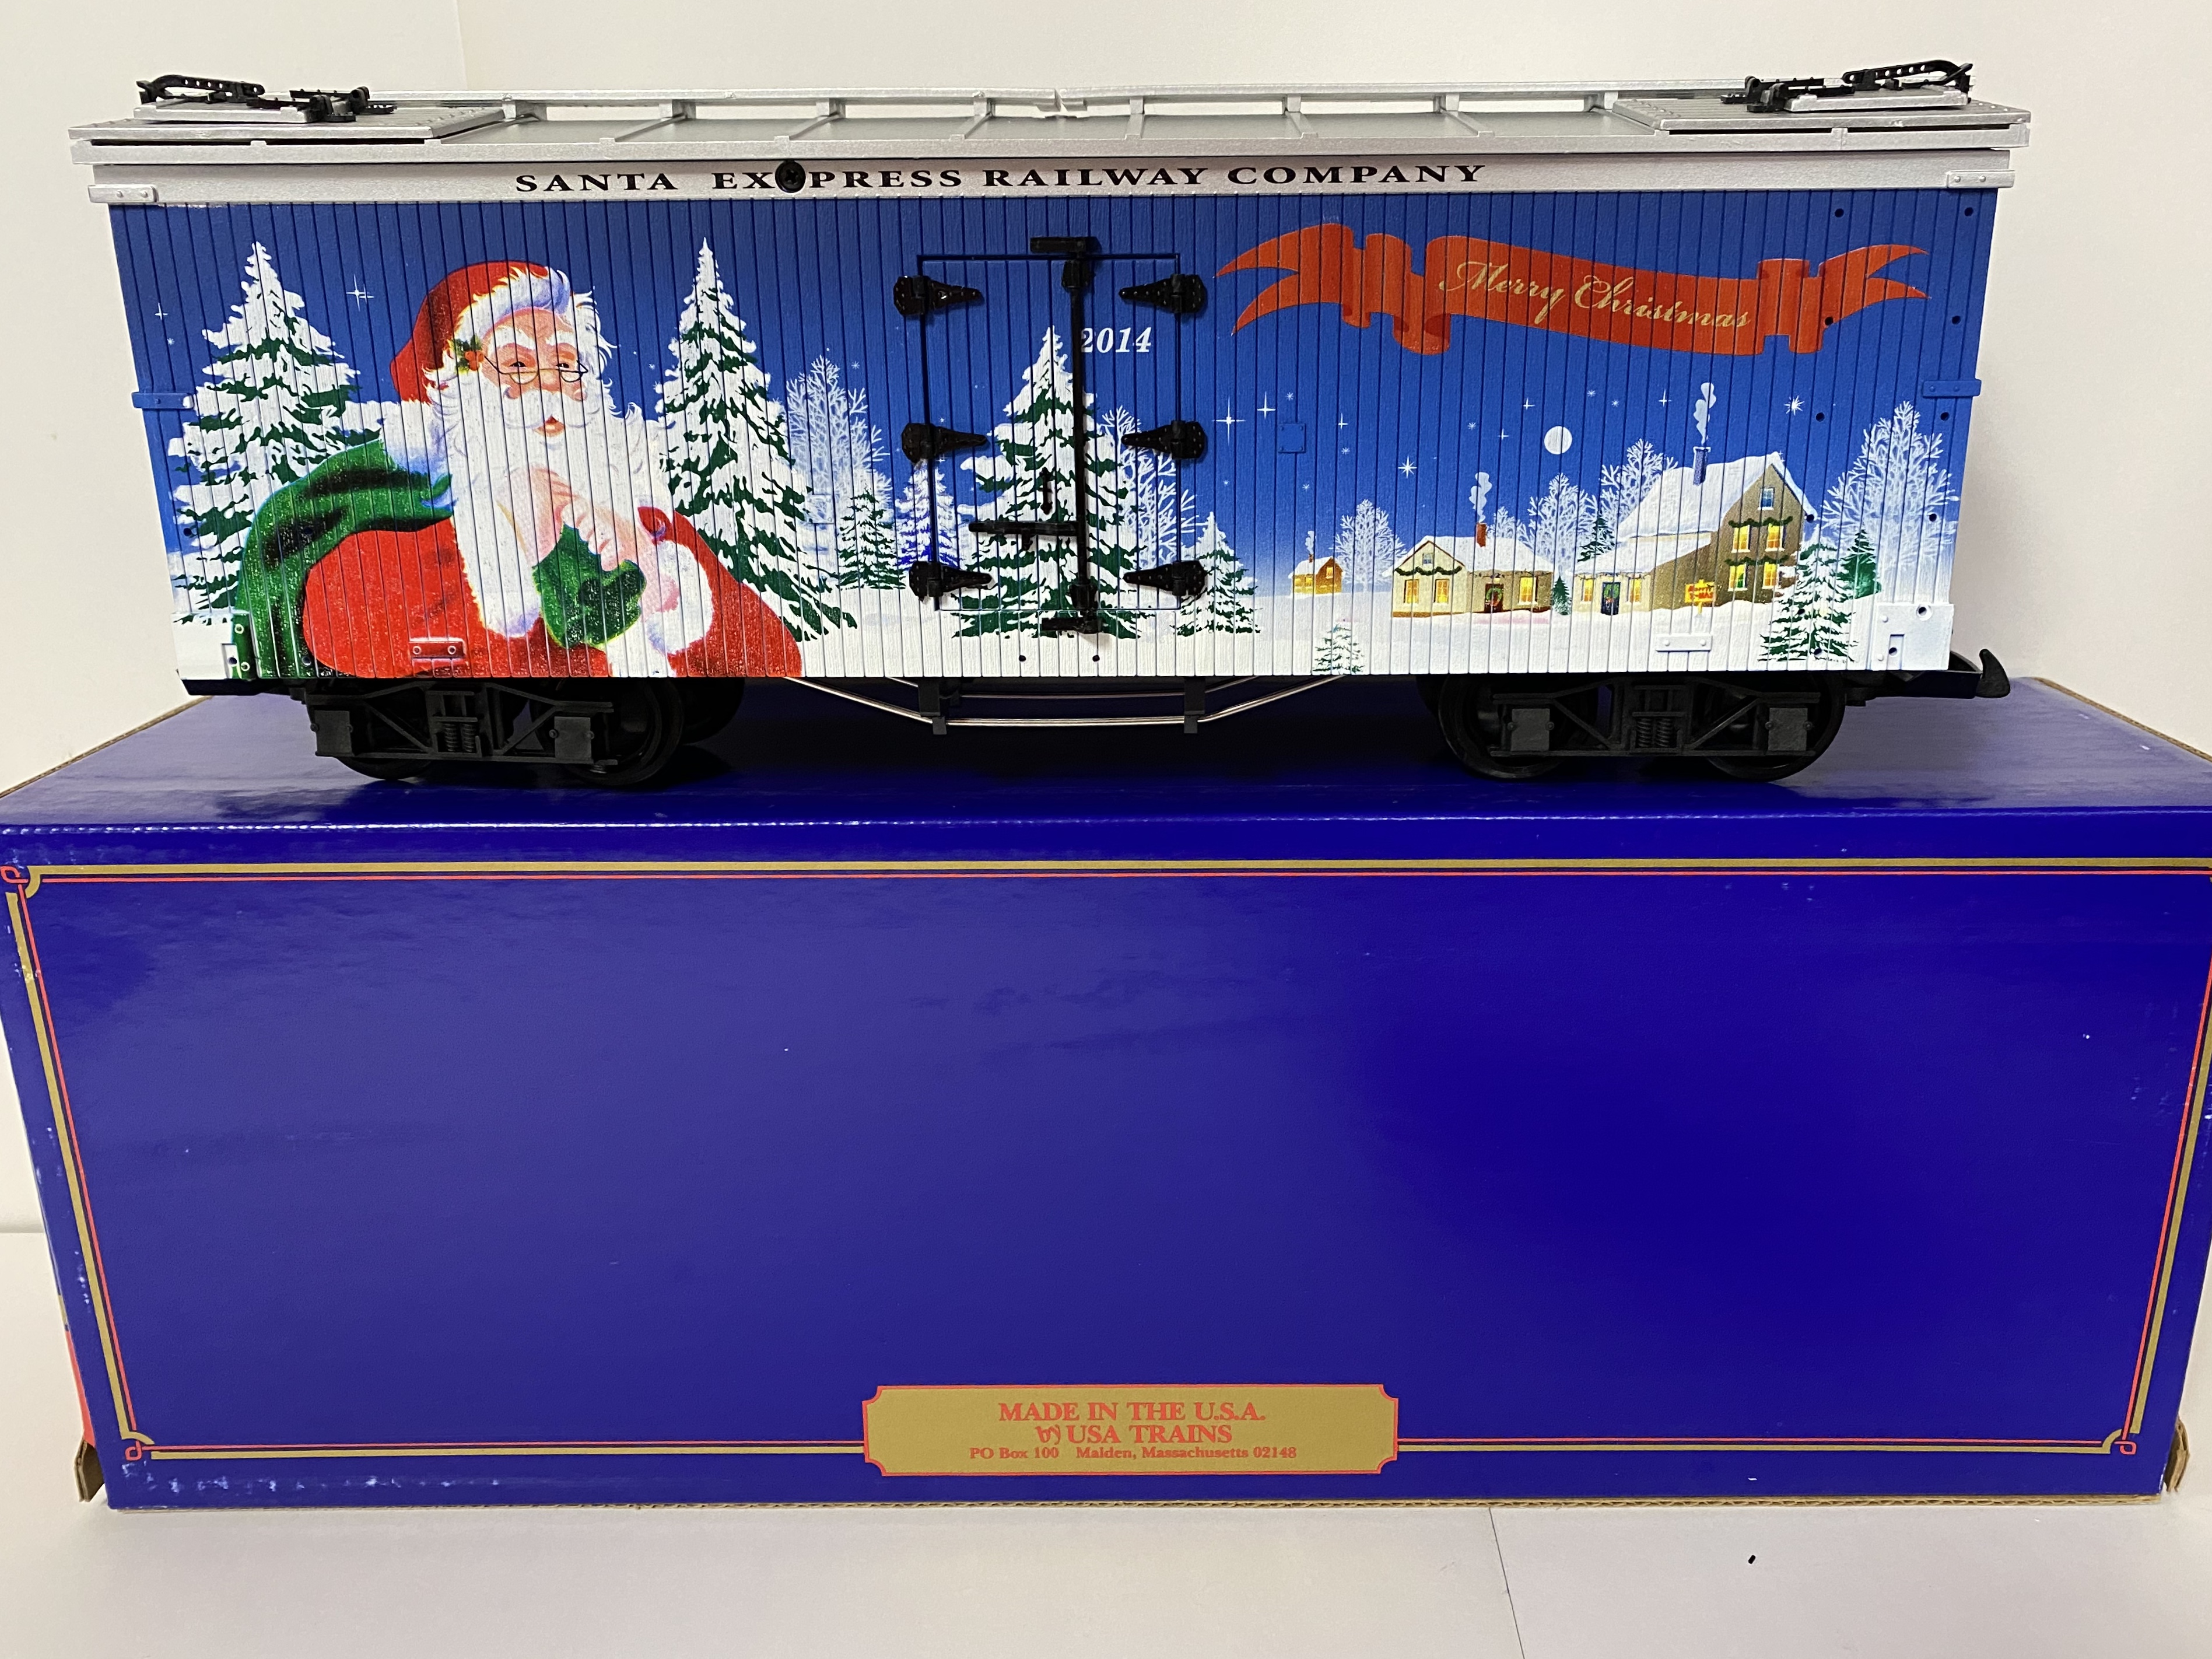 2014 Christmas Reefer (USA Trains 13032)